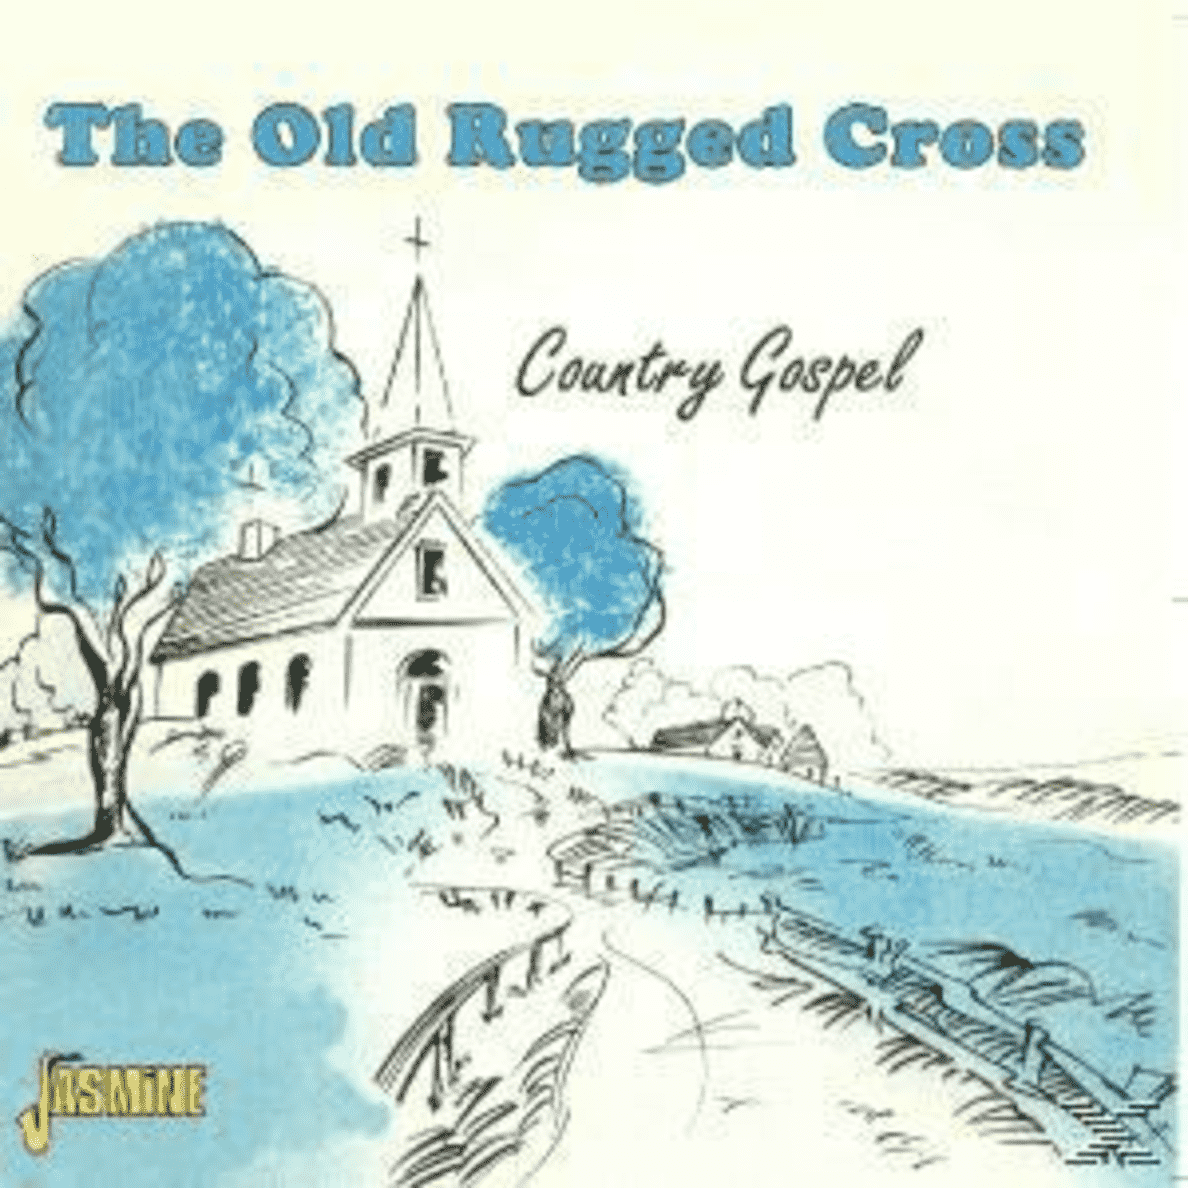 The Old Rugged Cross-Country Gospel